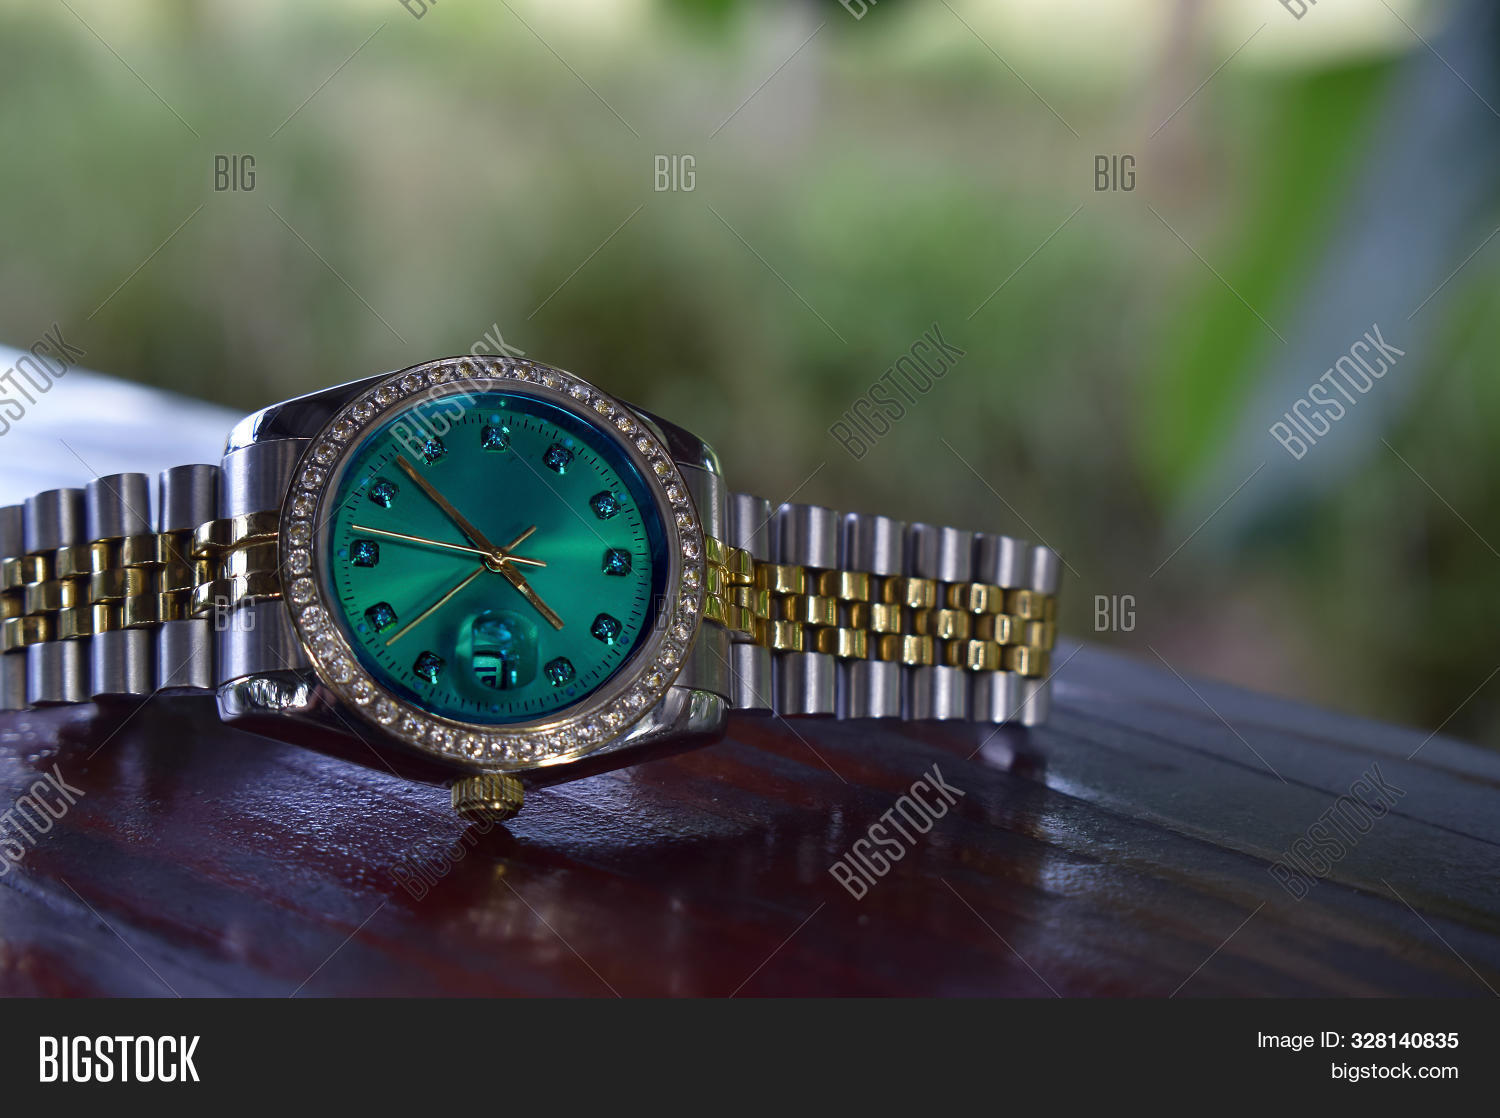 Luxury,There,a,and,antiques,are,been,collected,expensive,for,has,long,many,rare,that,time.,watch,watches Is